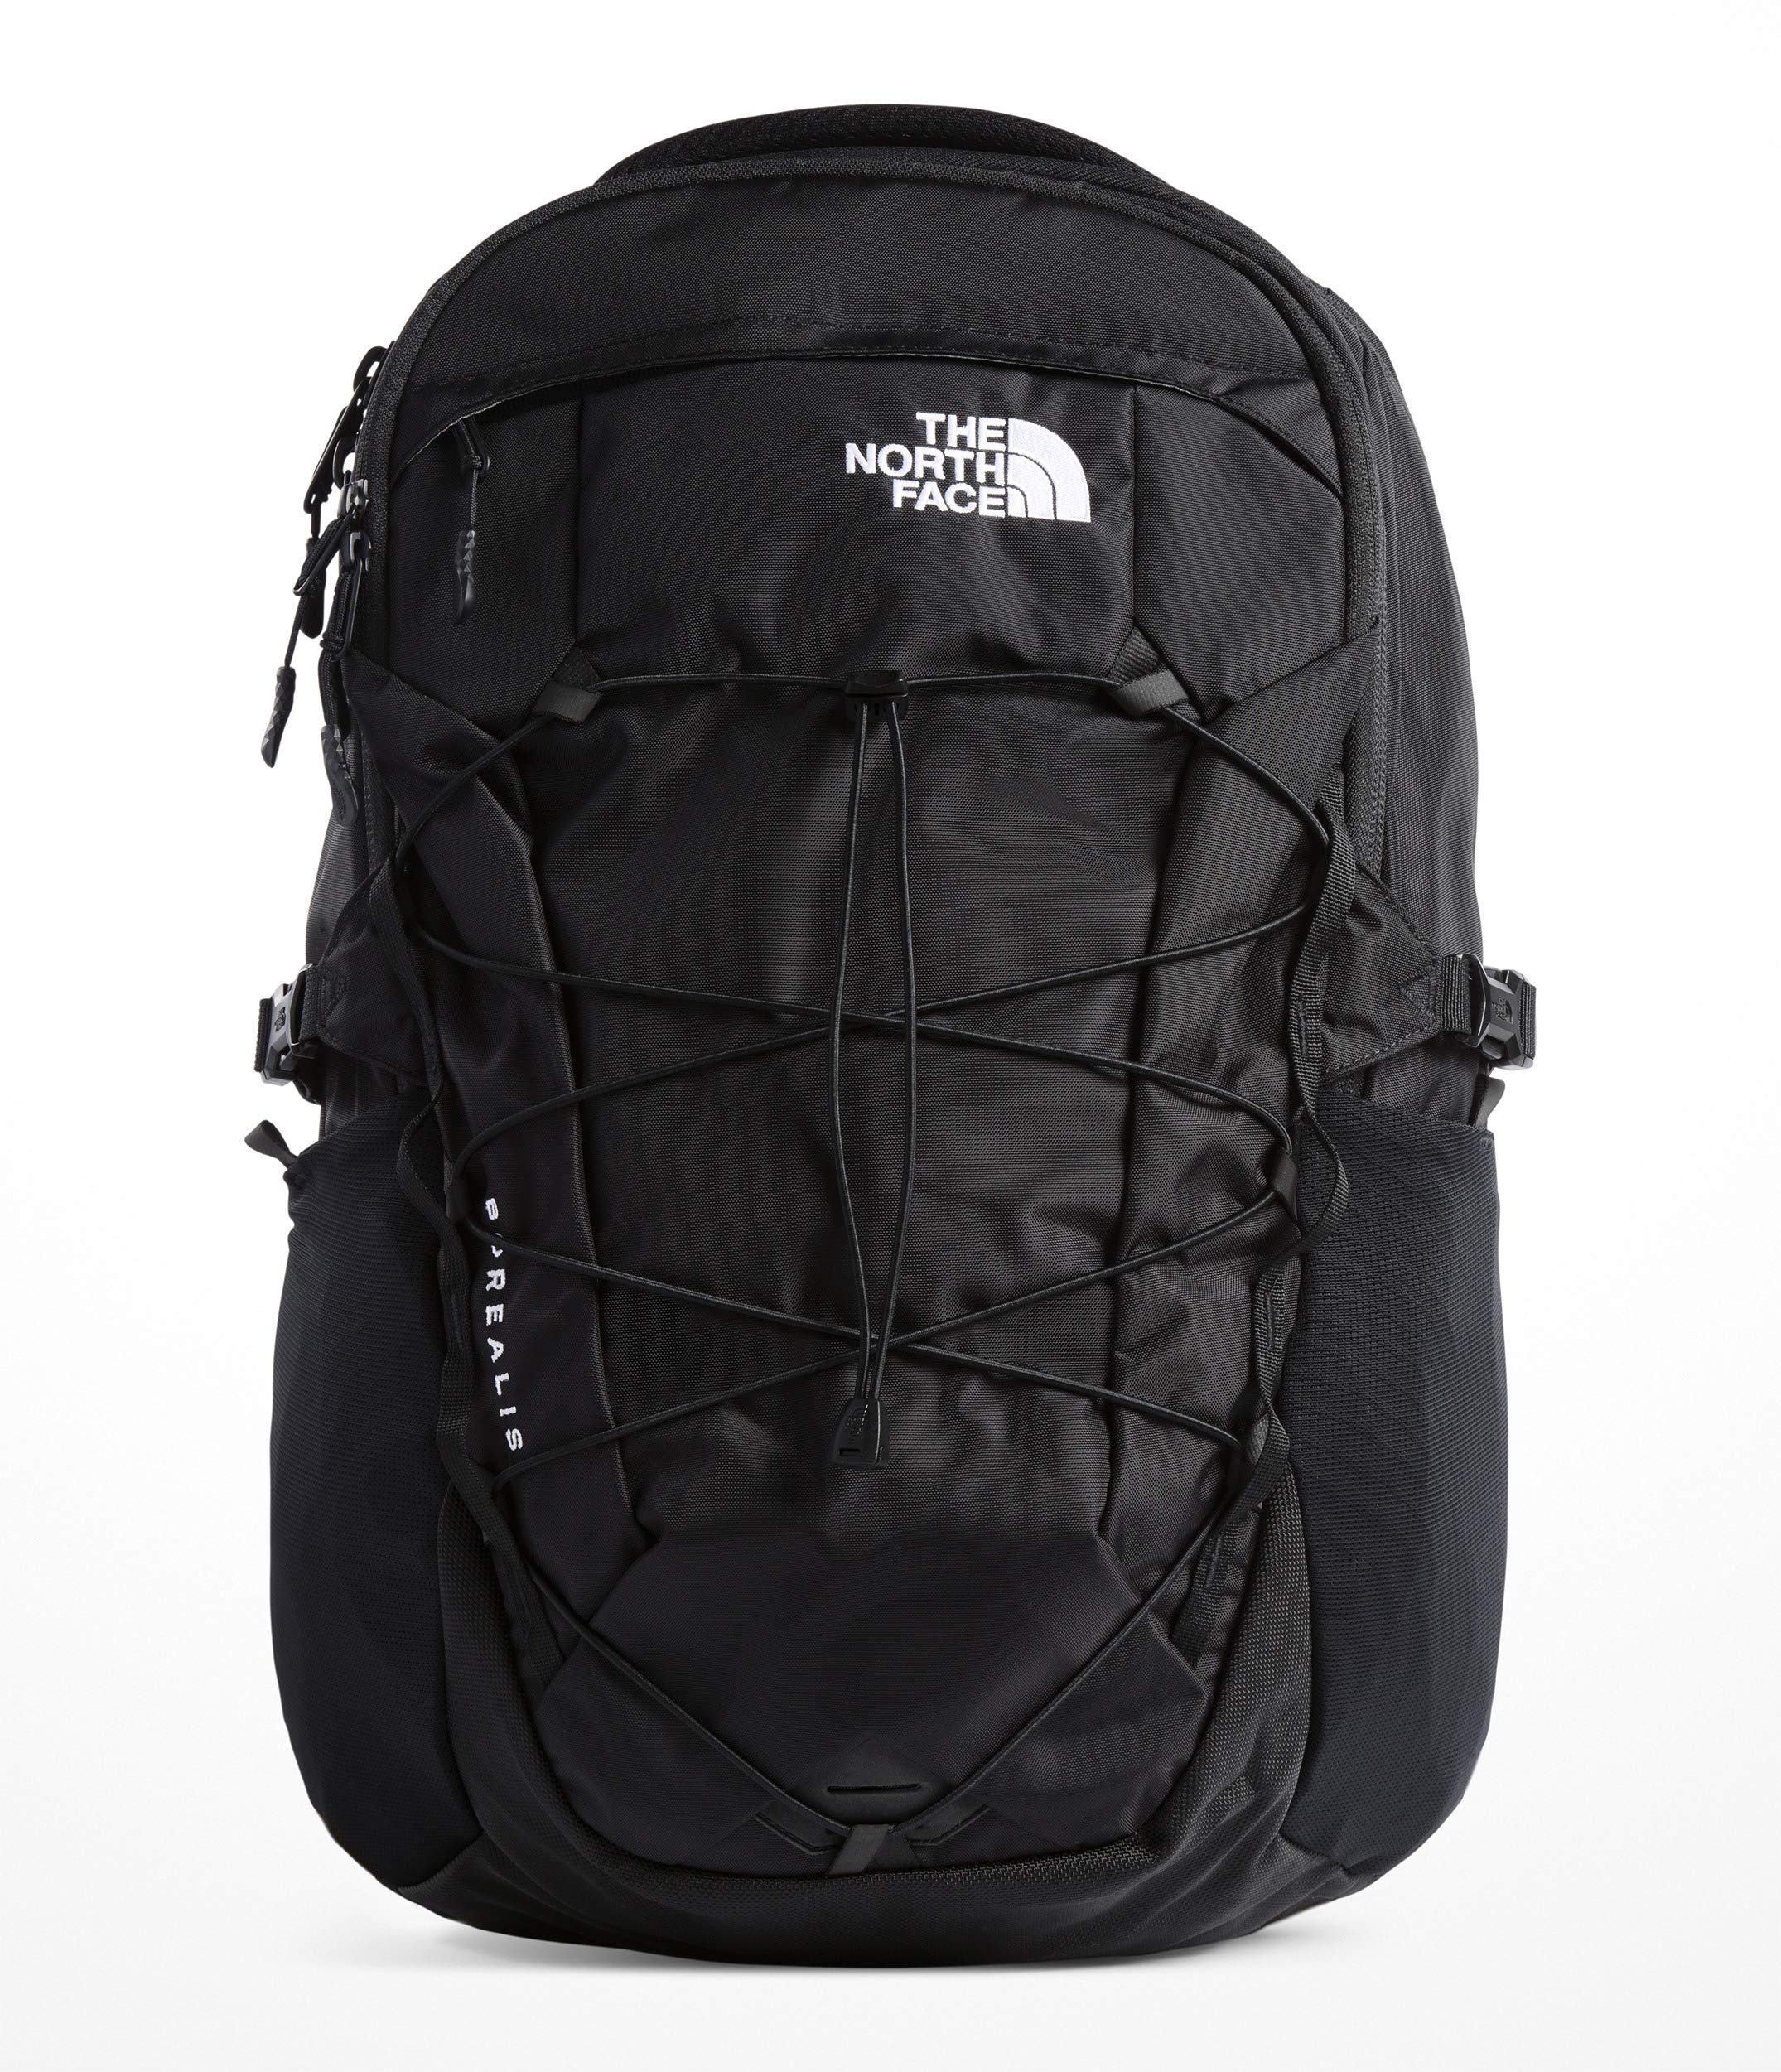 The North Face Borealis Backpack - TNF Black - One Size